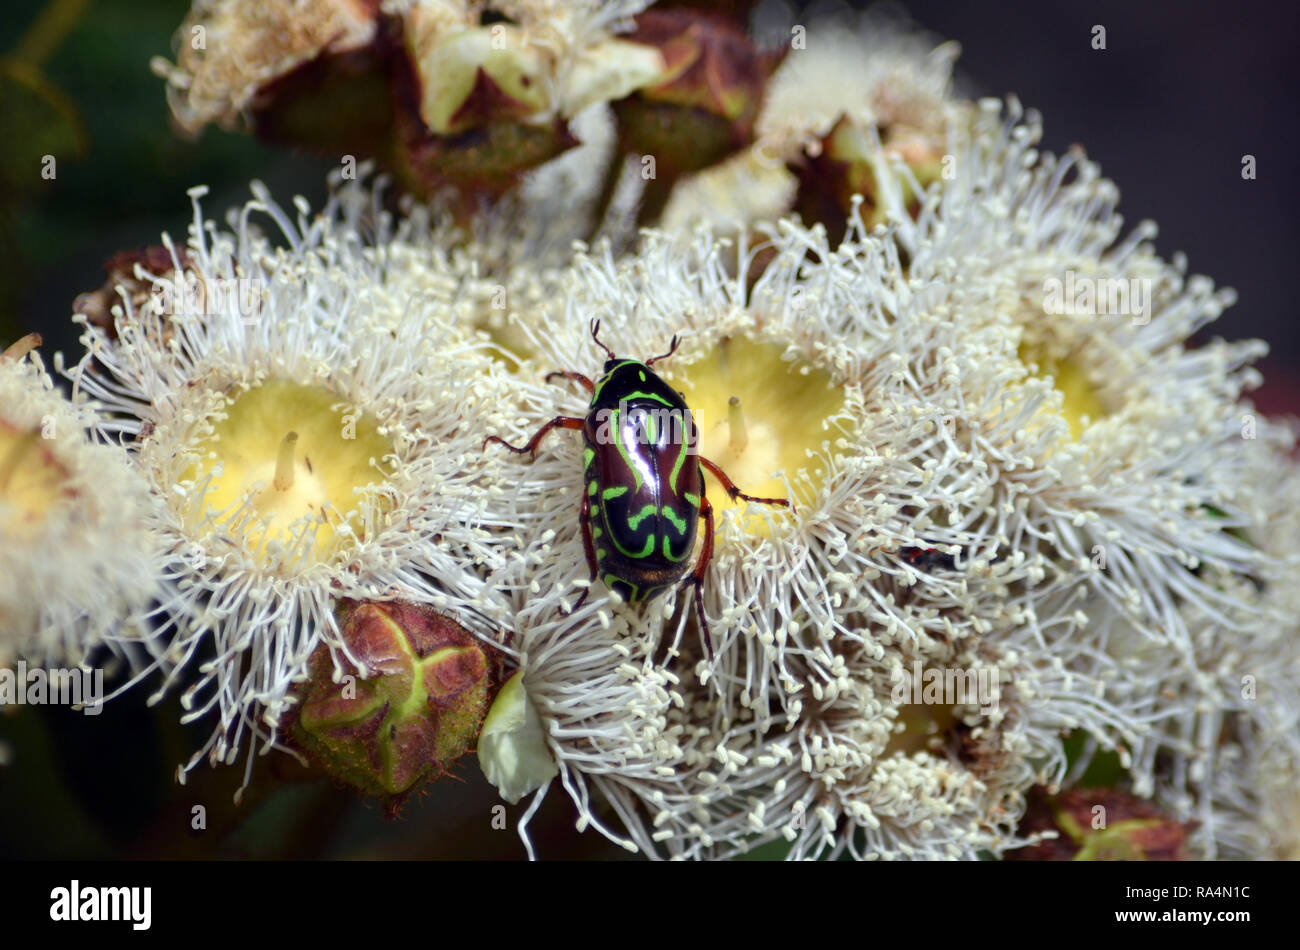 Australian native Fiddler Beetle, Eupoecila australasiae, family Scarabaeidae, feeding on nectar of Angophora hispida blossoms, Royal National Park - Stock Image